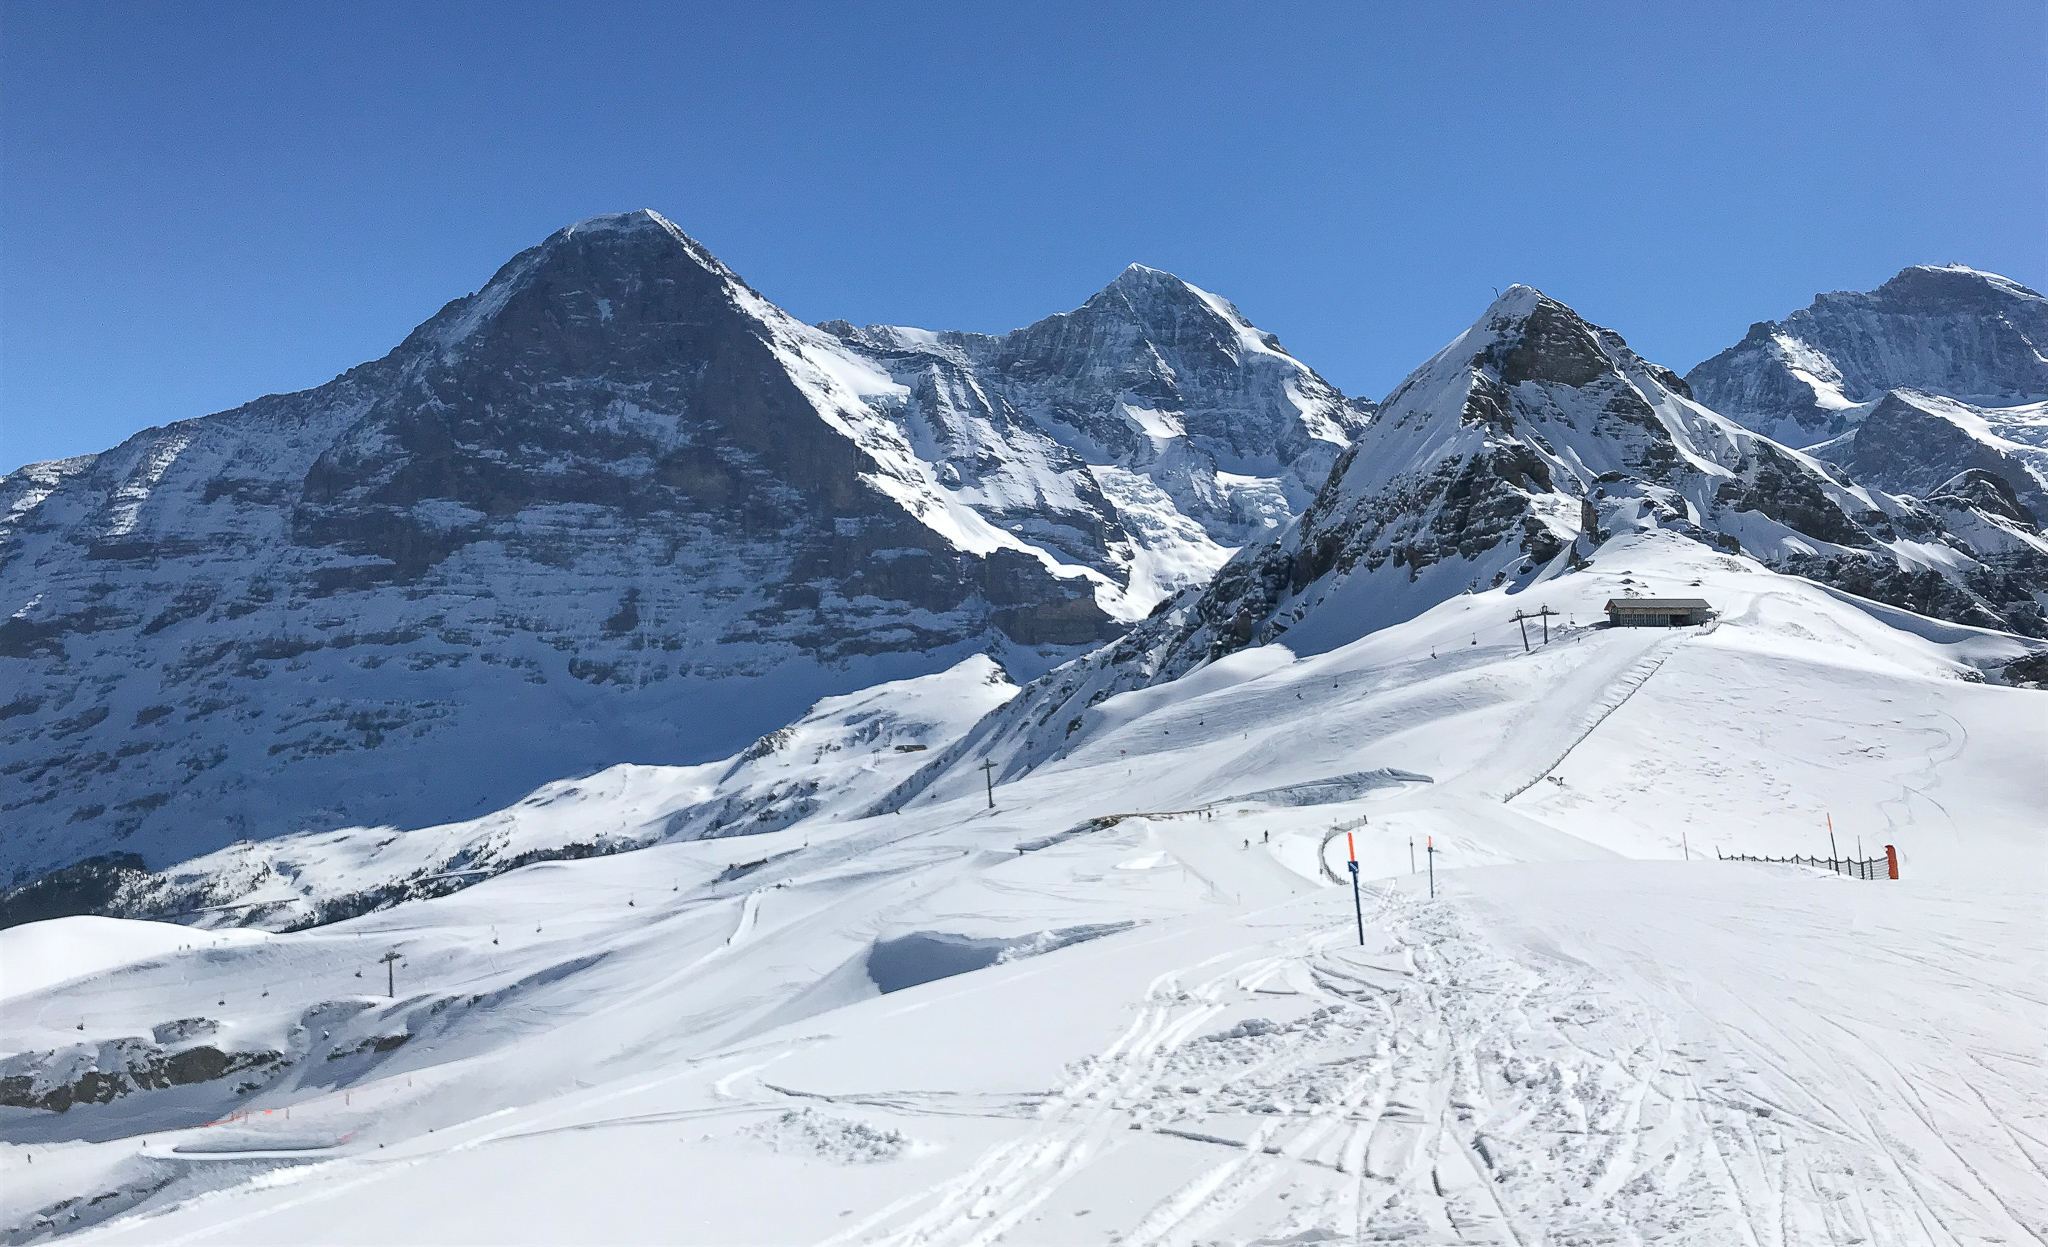 TO THE LEFT IS THE EIGER NORTH FACE, FOLLOWED BY THE MÖNCH AND JUNGFRAU IN THE BACKGROUND.